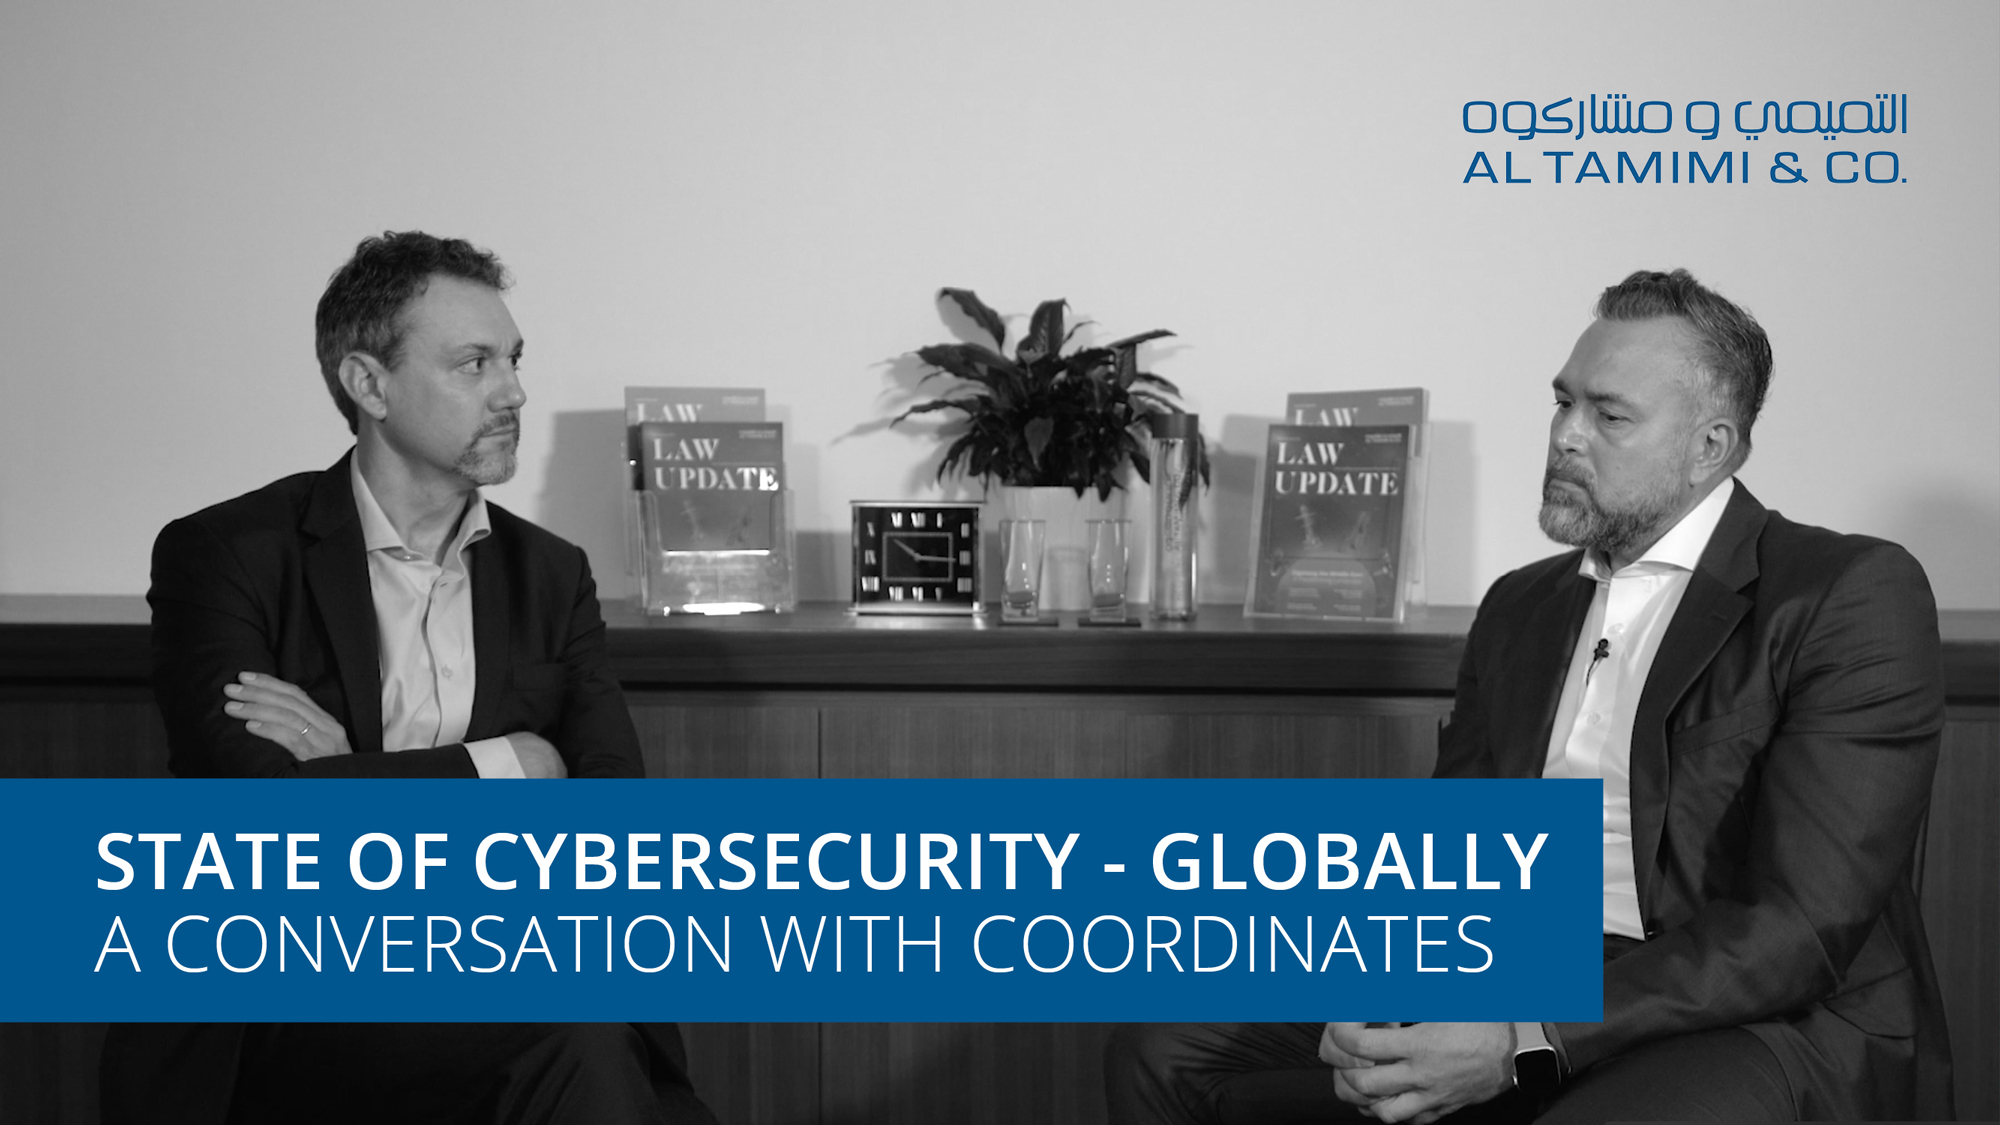 Part 1: State of Cybersecurity – Globally: A Conversation with Coordinates